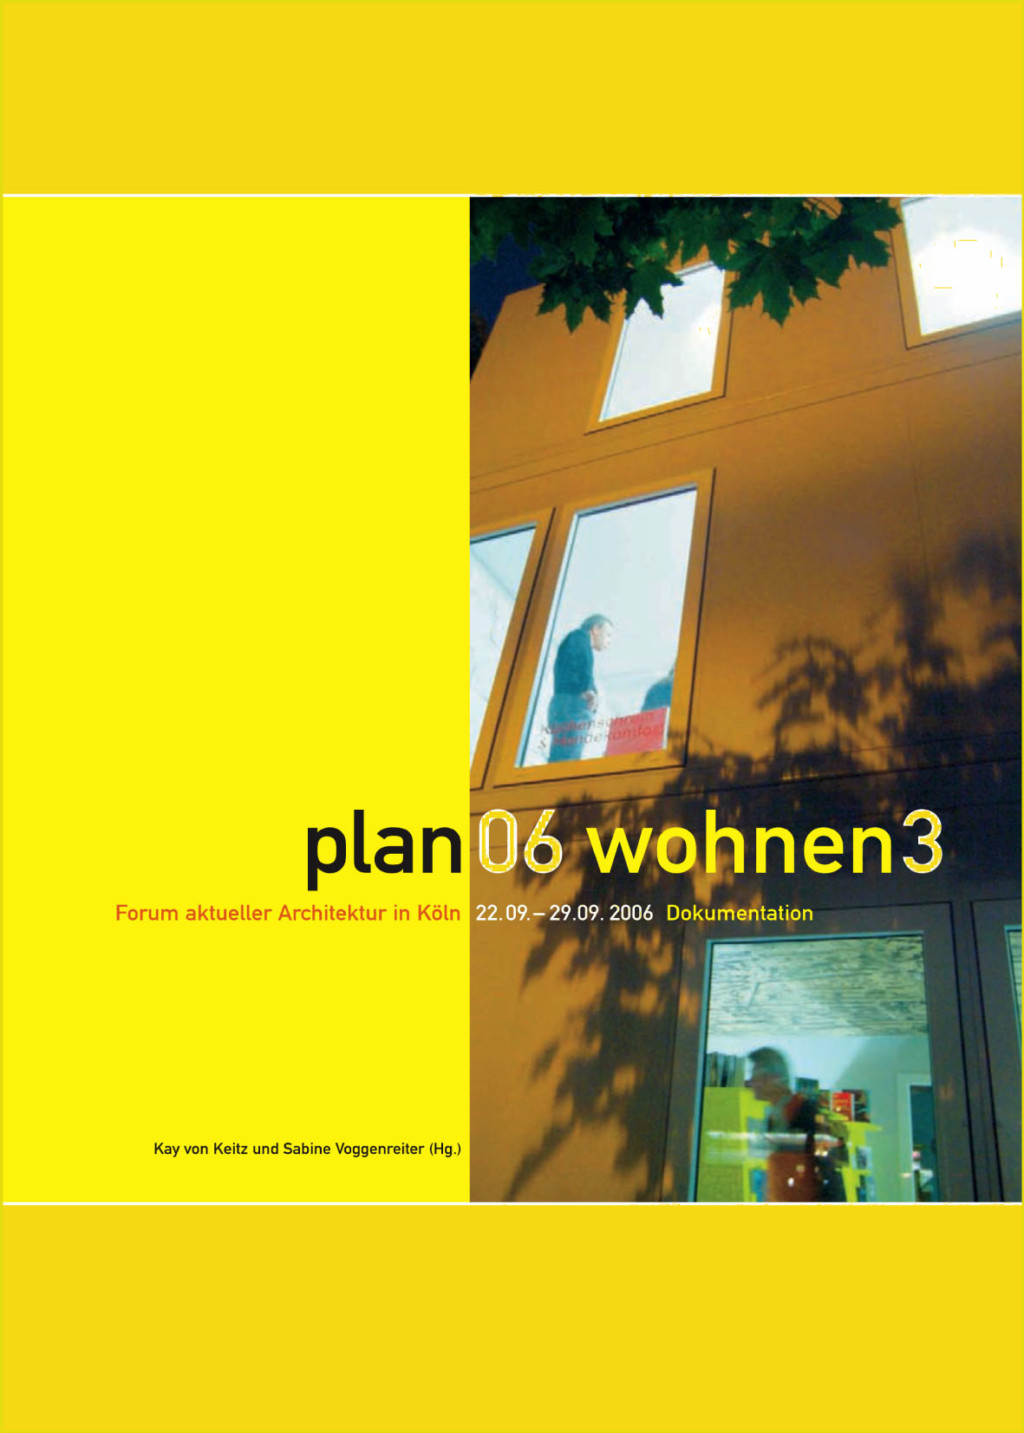 offsea. Publication plan06 Wohnen 3